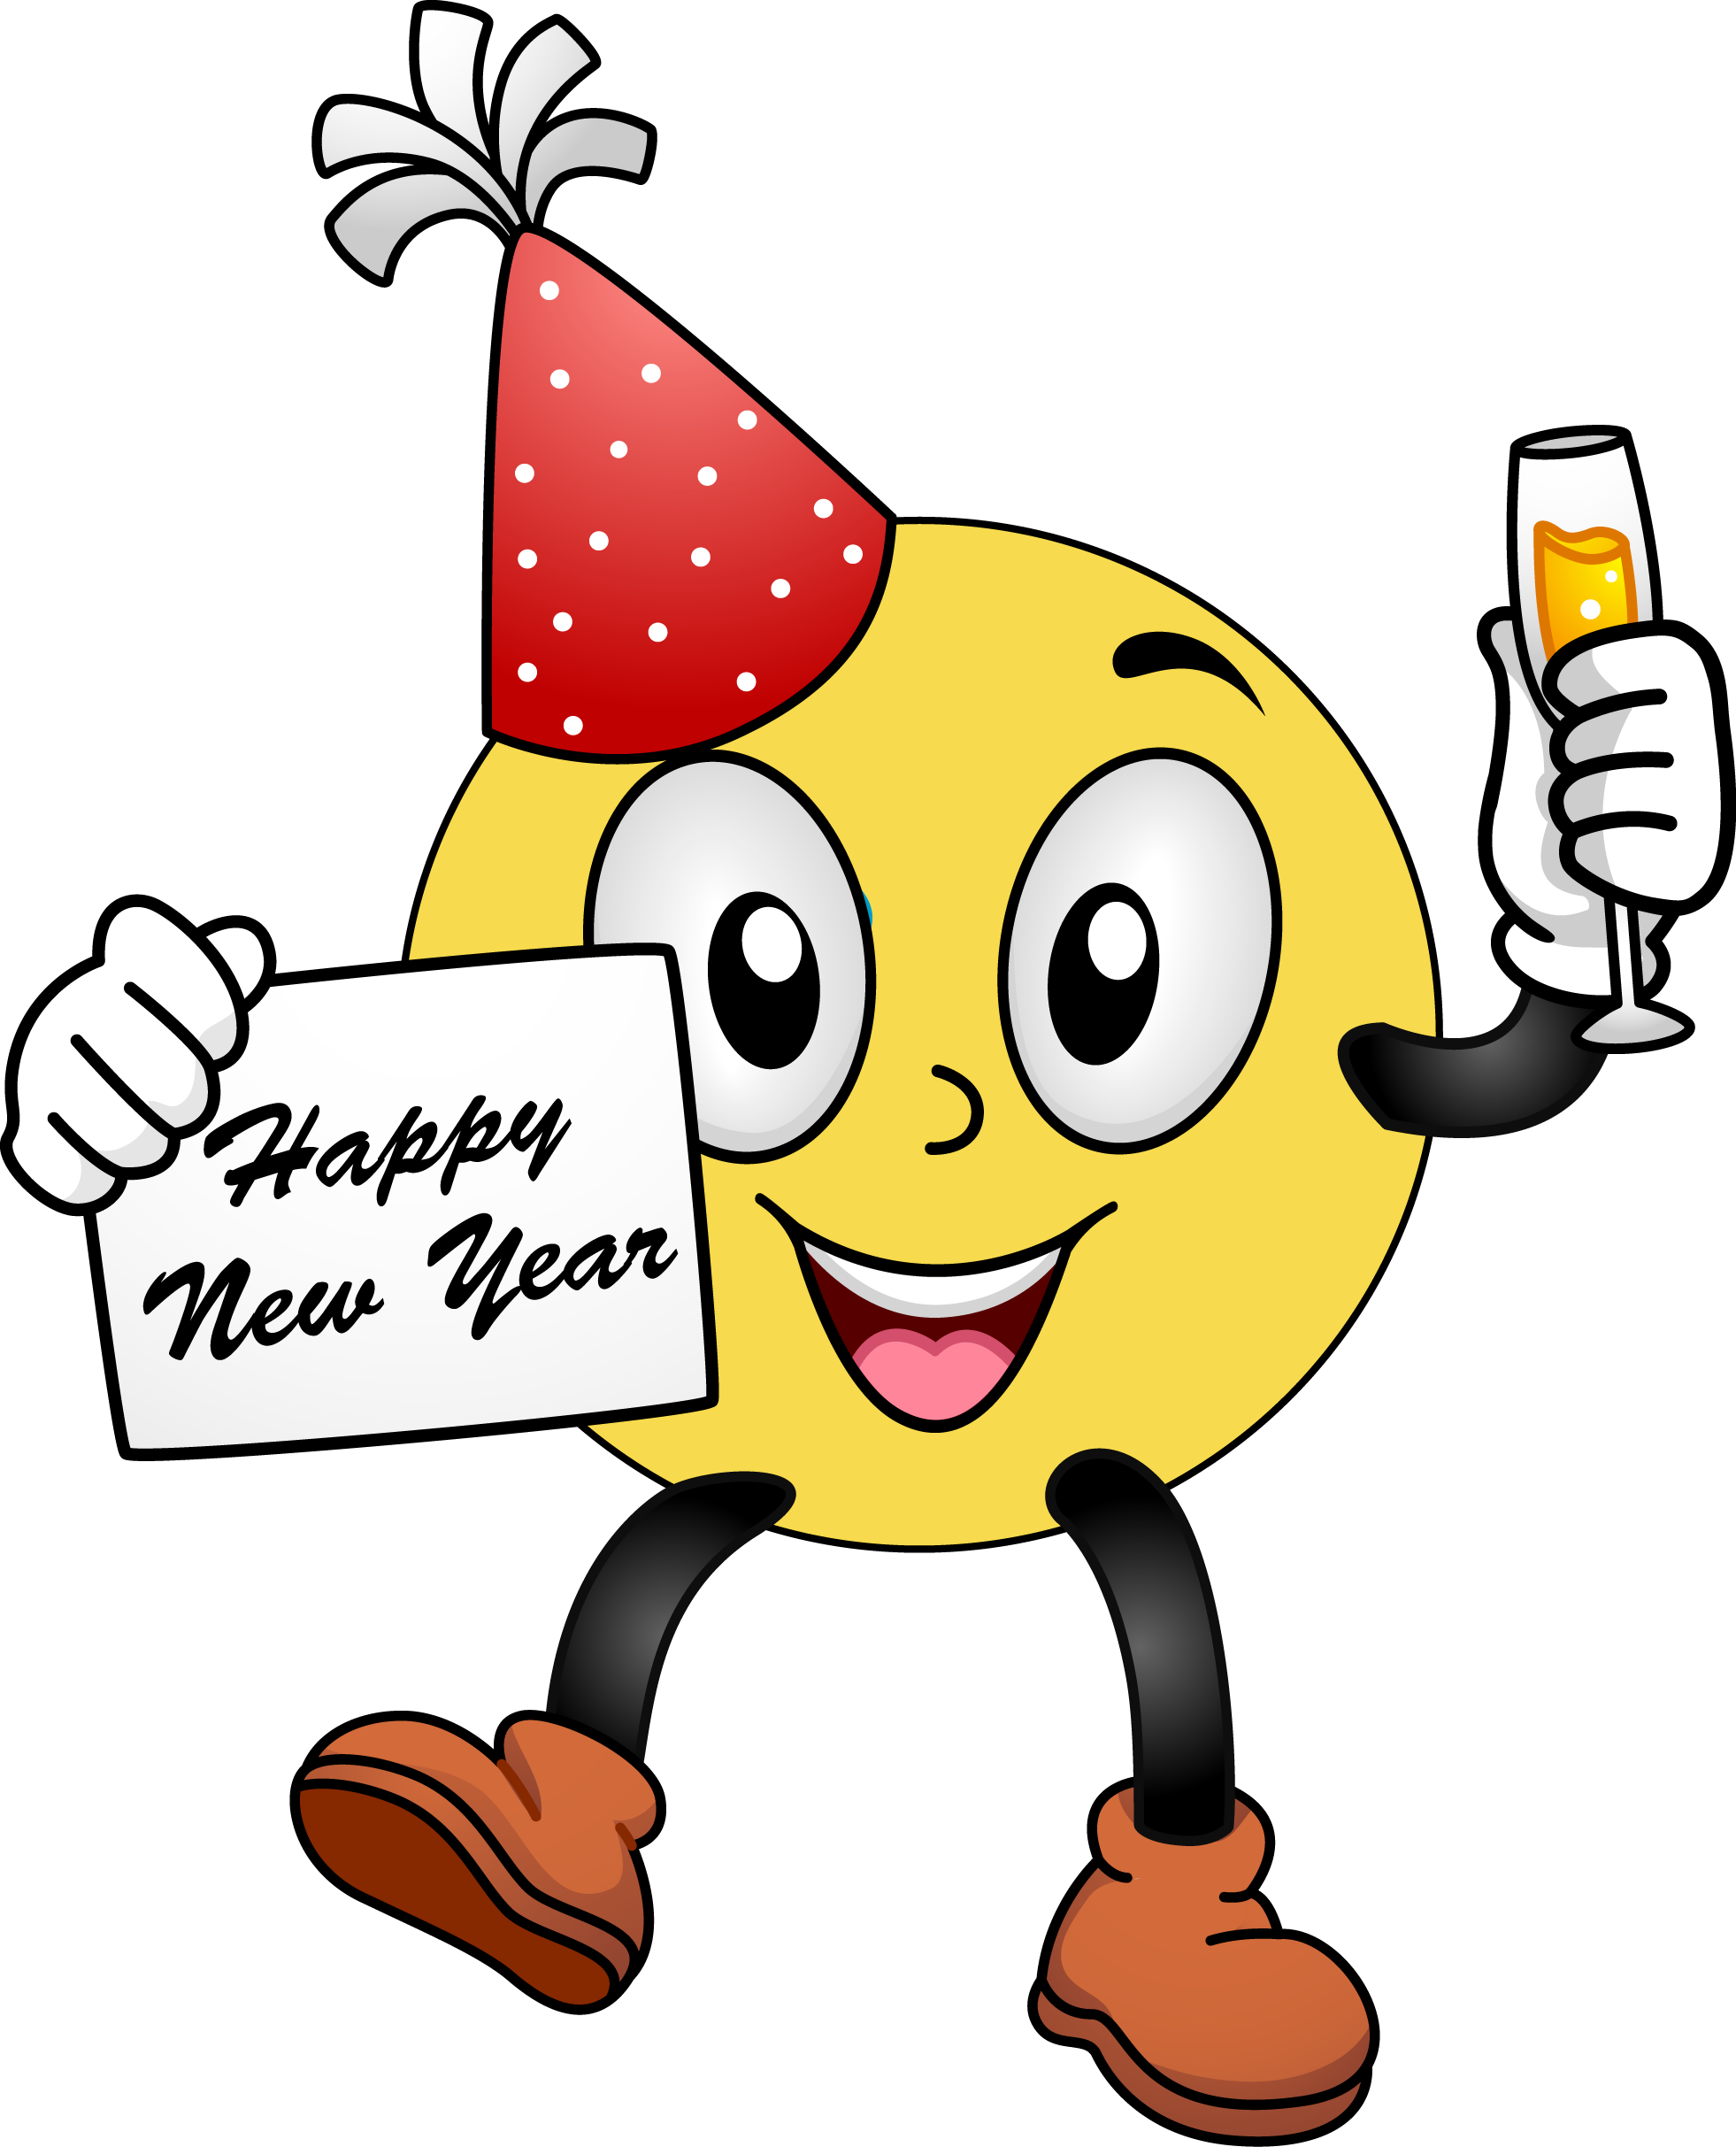 happy new year smiley face clip art - photo #1